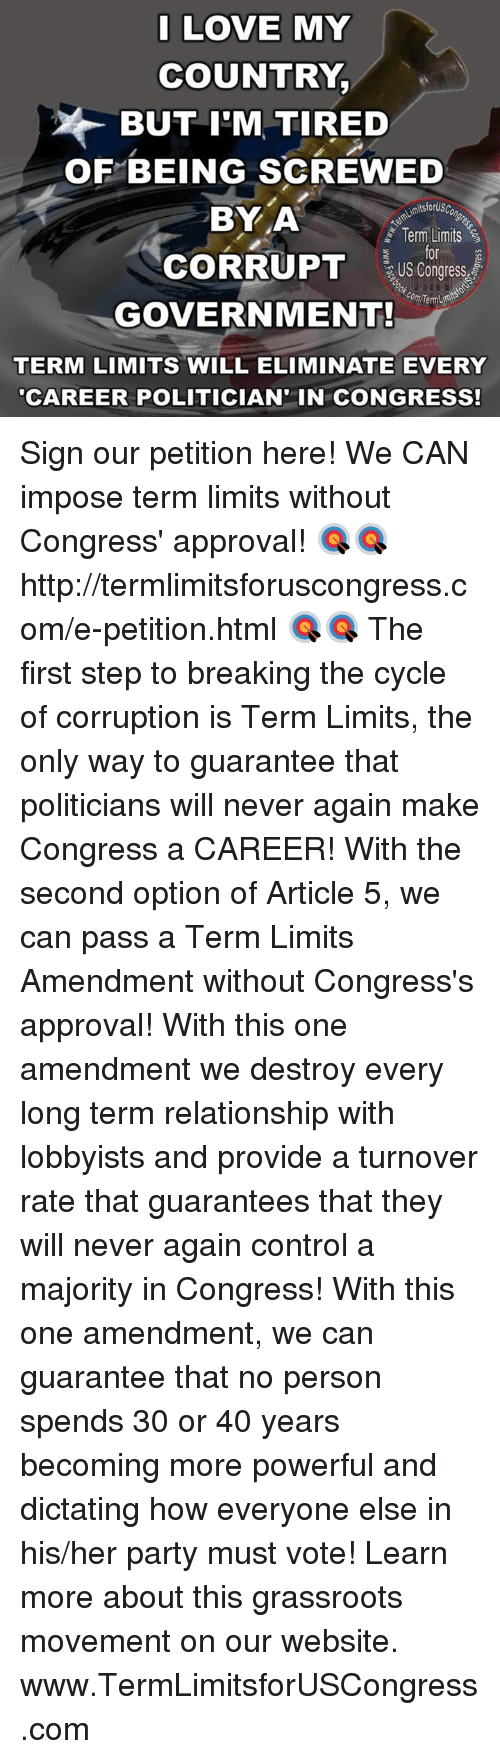 "Approvation: I LOVE MY  COUNTRY  BUT I'M TIRED  OF BEING SCREWED  tsiorUSC  BY A  Term Limits  CORRUPT  US Congress  GOVERNMENT!  TERM LIMITS WILL ELIMINATE EVERY  ""CAREER POLITICIAN IN CONGRESS! Sign our petition here! We CAN impose term limits without Congress' approval! 🎯🎯http://termlimitsforuscongress.com/e-petition.html 🎯🎯  The first step to breaking the cycle of corruption is Term Limits, the only way to guarantee that politicians will never again make Congress a CAREER!  With the second option of Article 5, we can pass a Term Limits Amendment without Congress's approval! With this one amendment we destroy every long term relationship with lobbyists and provide a turnover rate that guarantees that they will never again control a majority in Congress! With this one amendment, we can guarantee that no person spends 30 or 40 years becoming more powerful and dictating how everyone else in his/her party must vote!  Learn more about this grassroots movement on our website. www.TermLimitsforUSCongress.com"